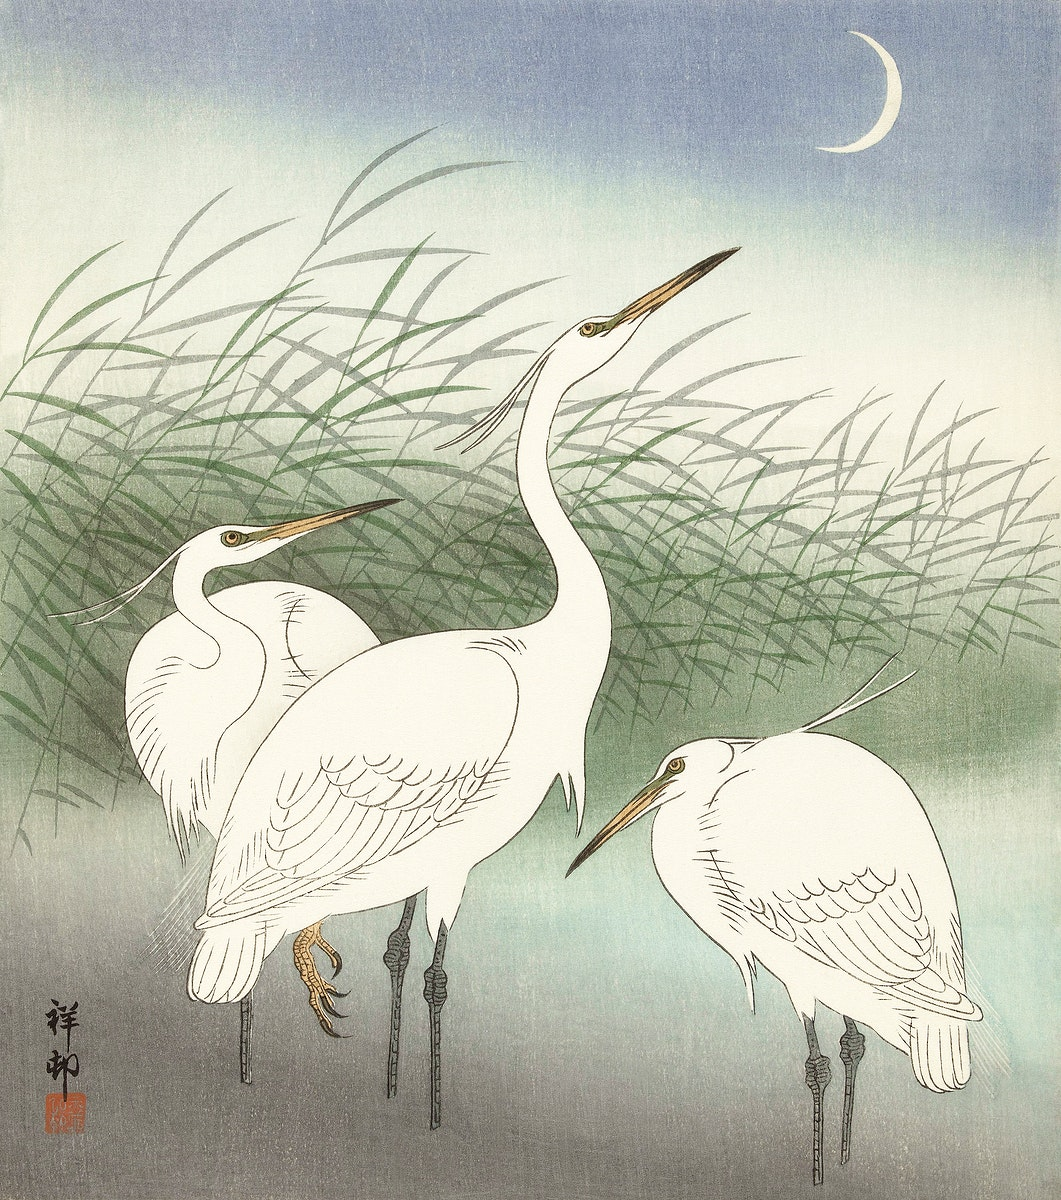 Herons in shallow water (1934) by Ohara Koson (1877-1945). Original from The Rijksmuseum. Digitally enhanced by rawpixel.